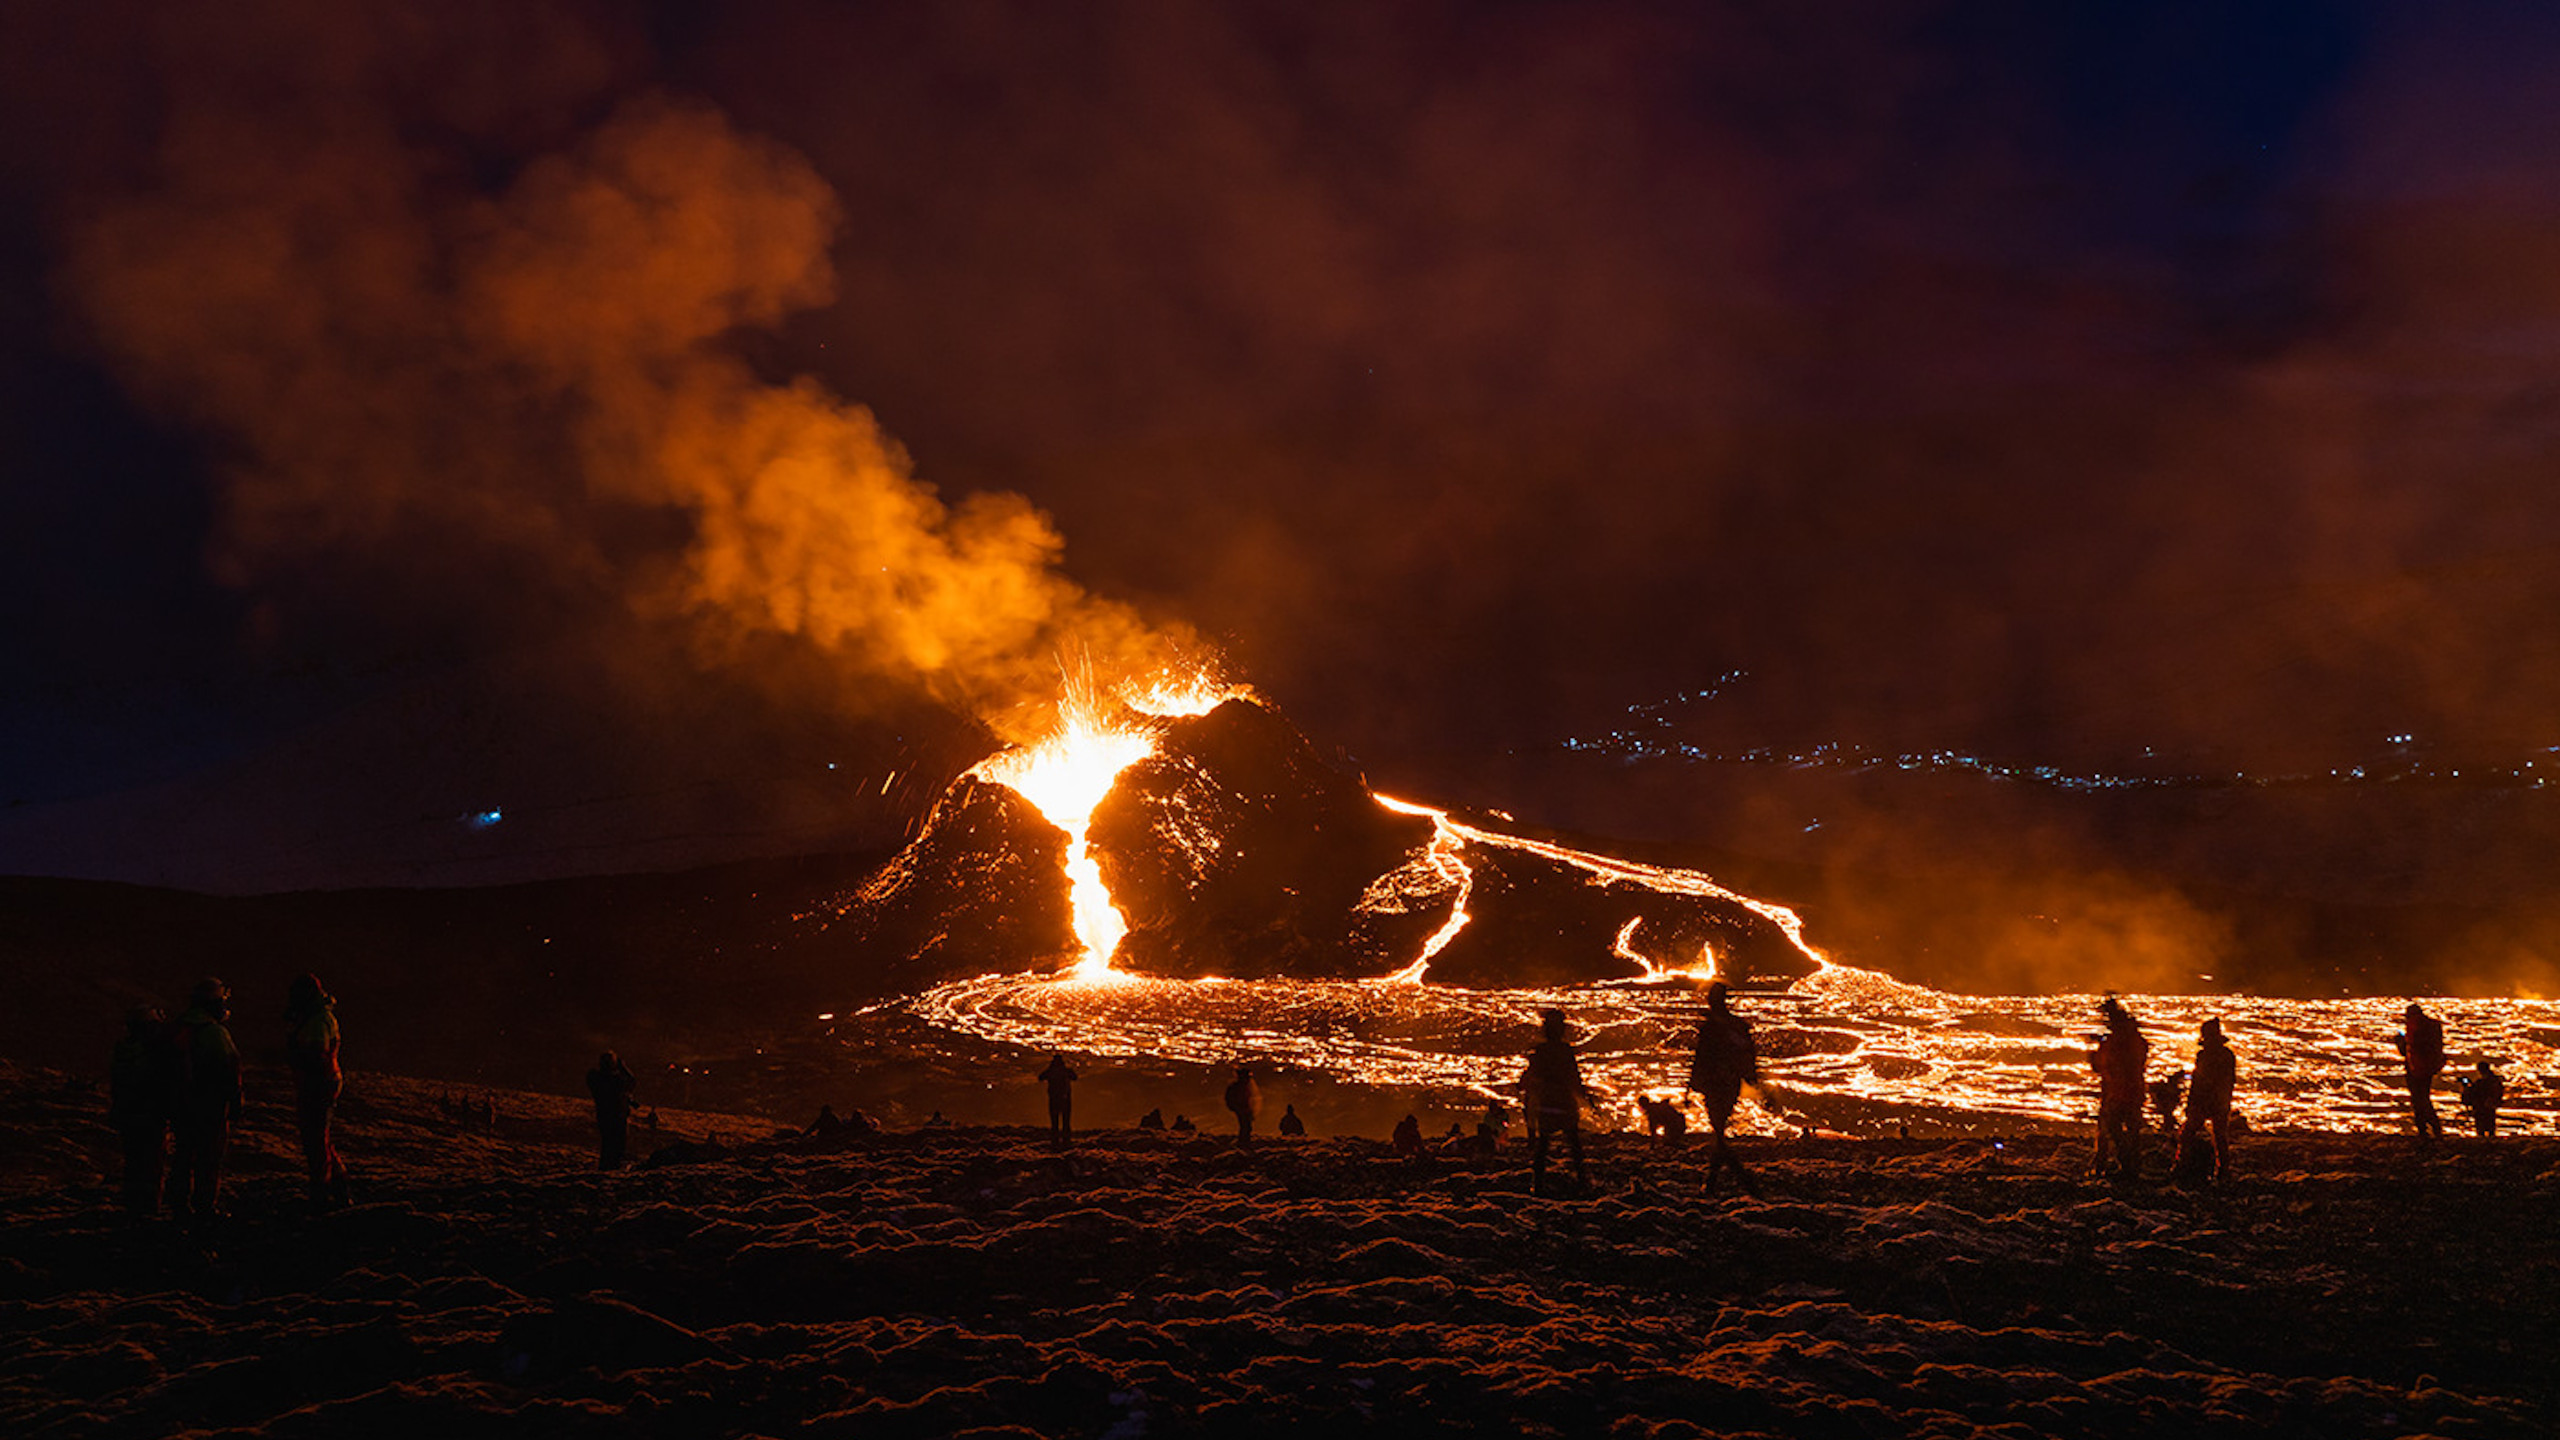 Stunning scenes from the Fagradalsfjall volcanic eruption